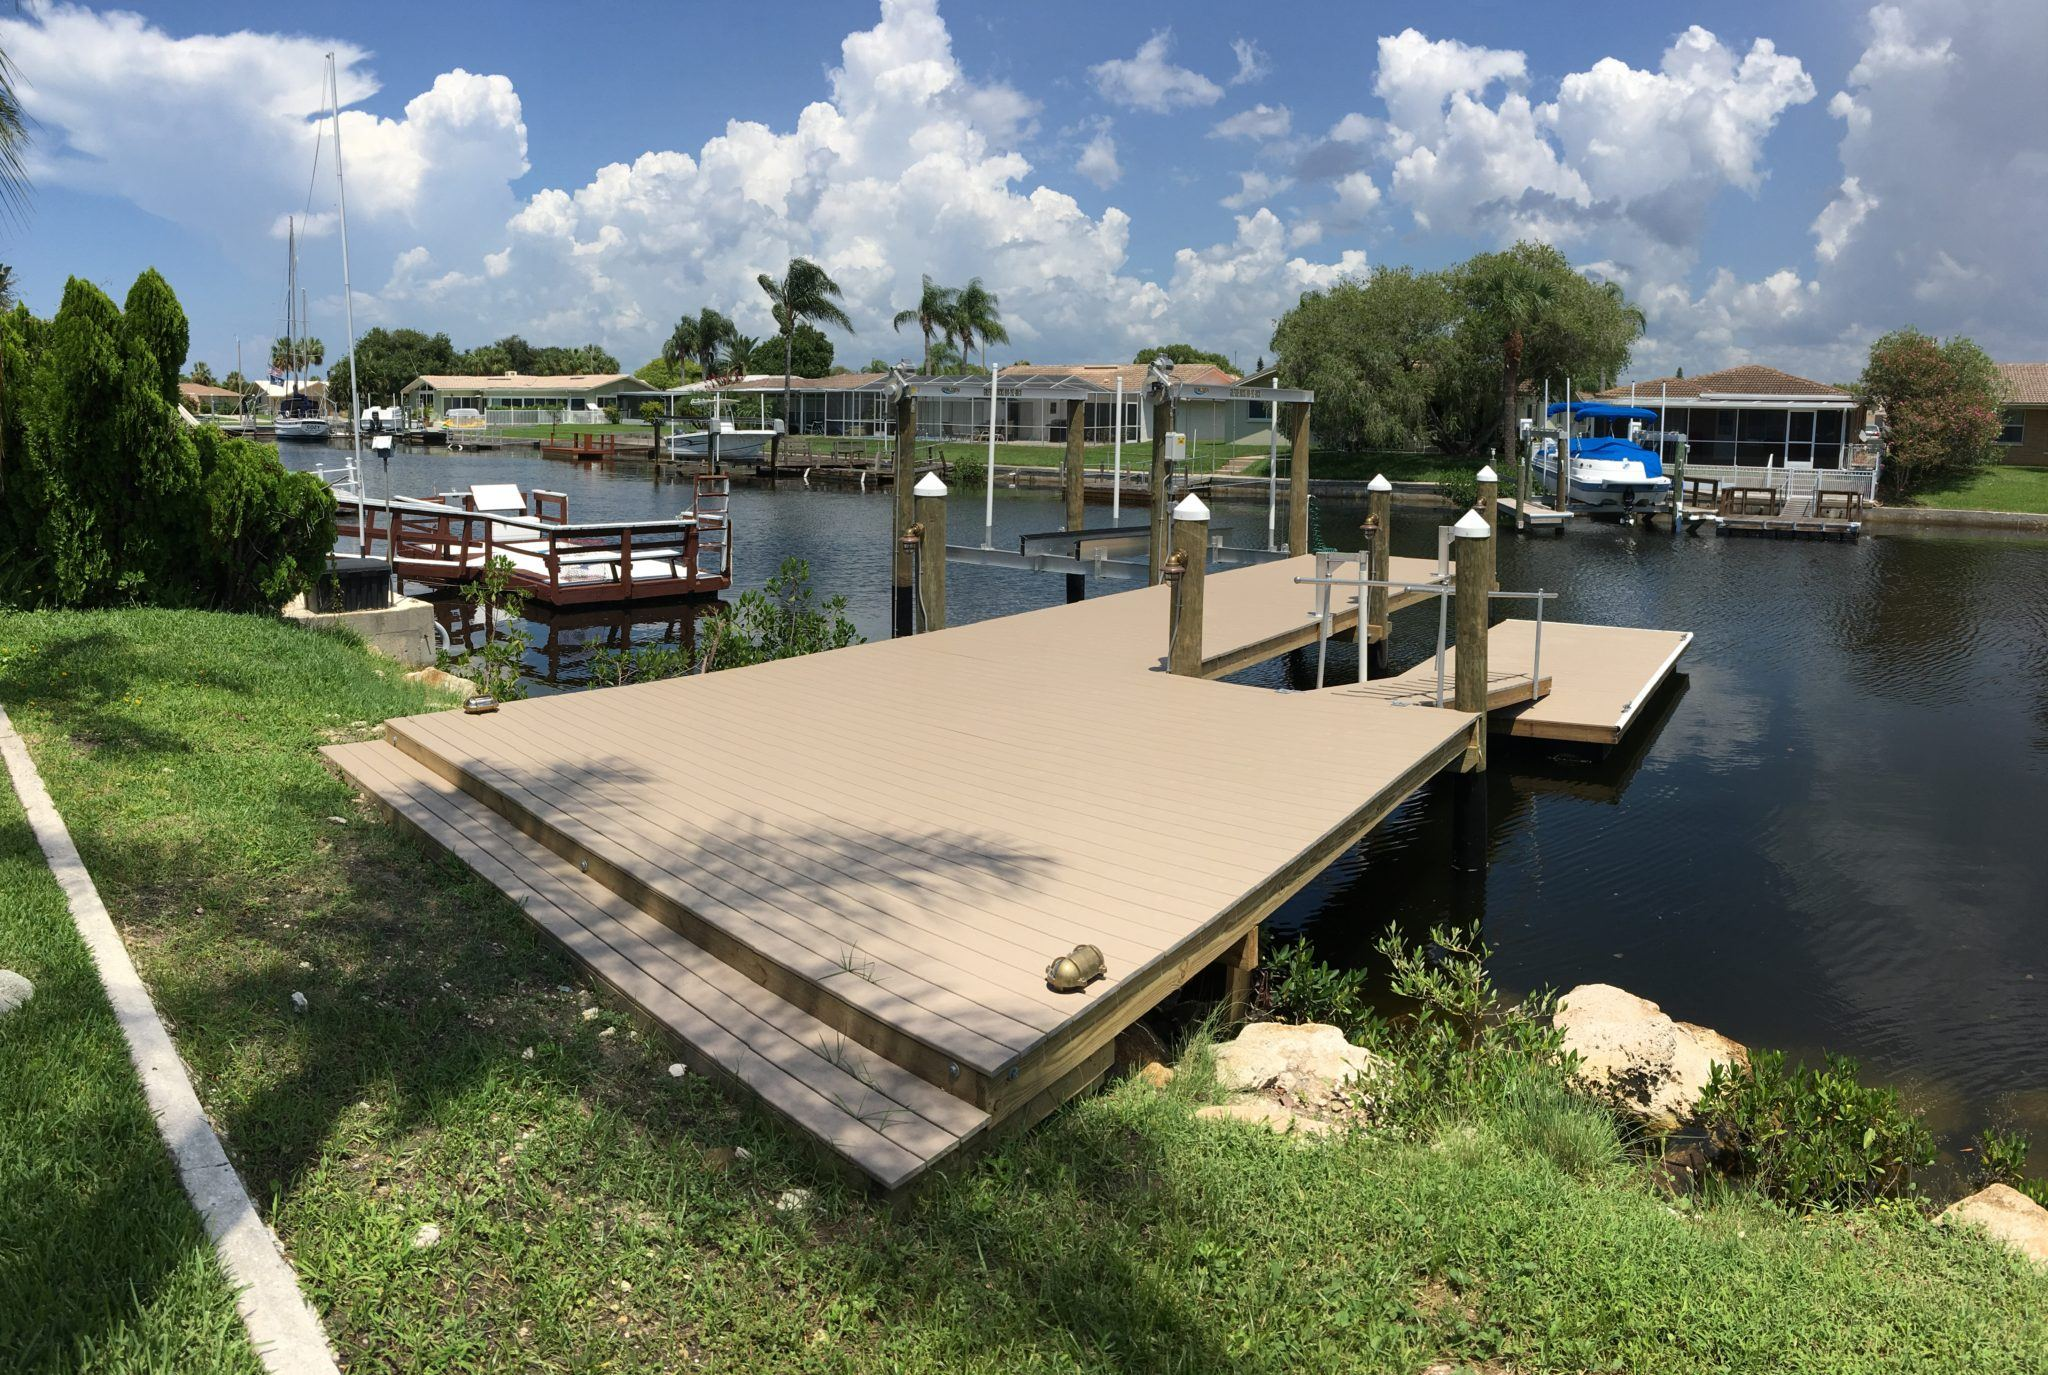 A Trex stationary dock with a composite floating dock attached with an aluminum boat lift